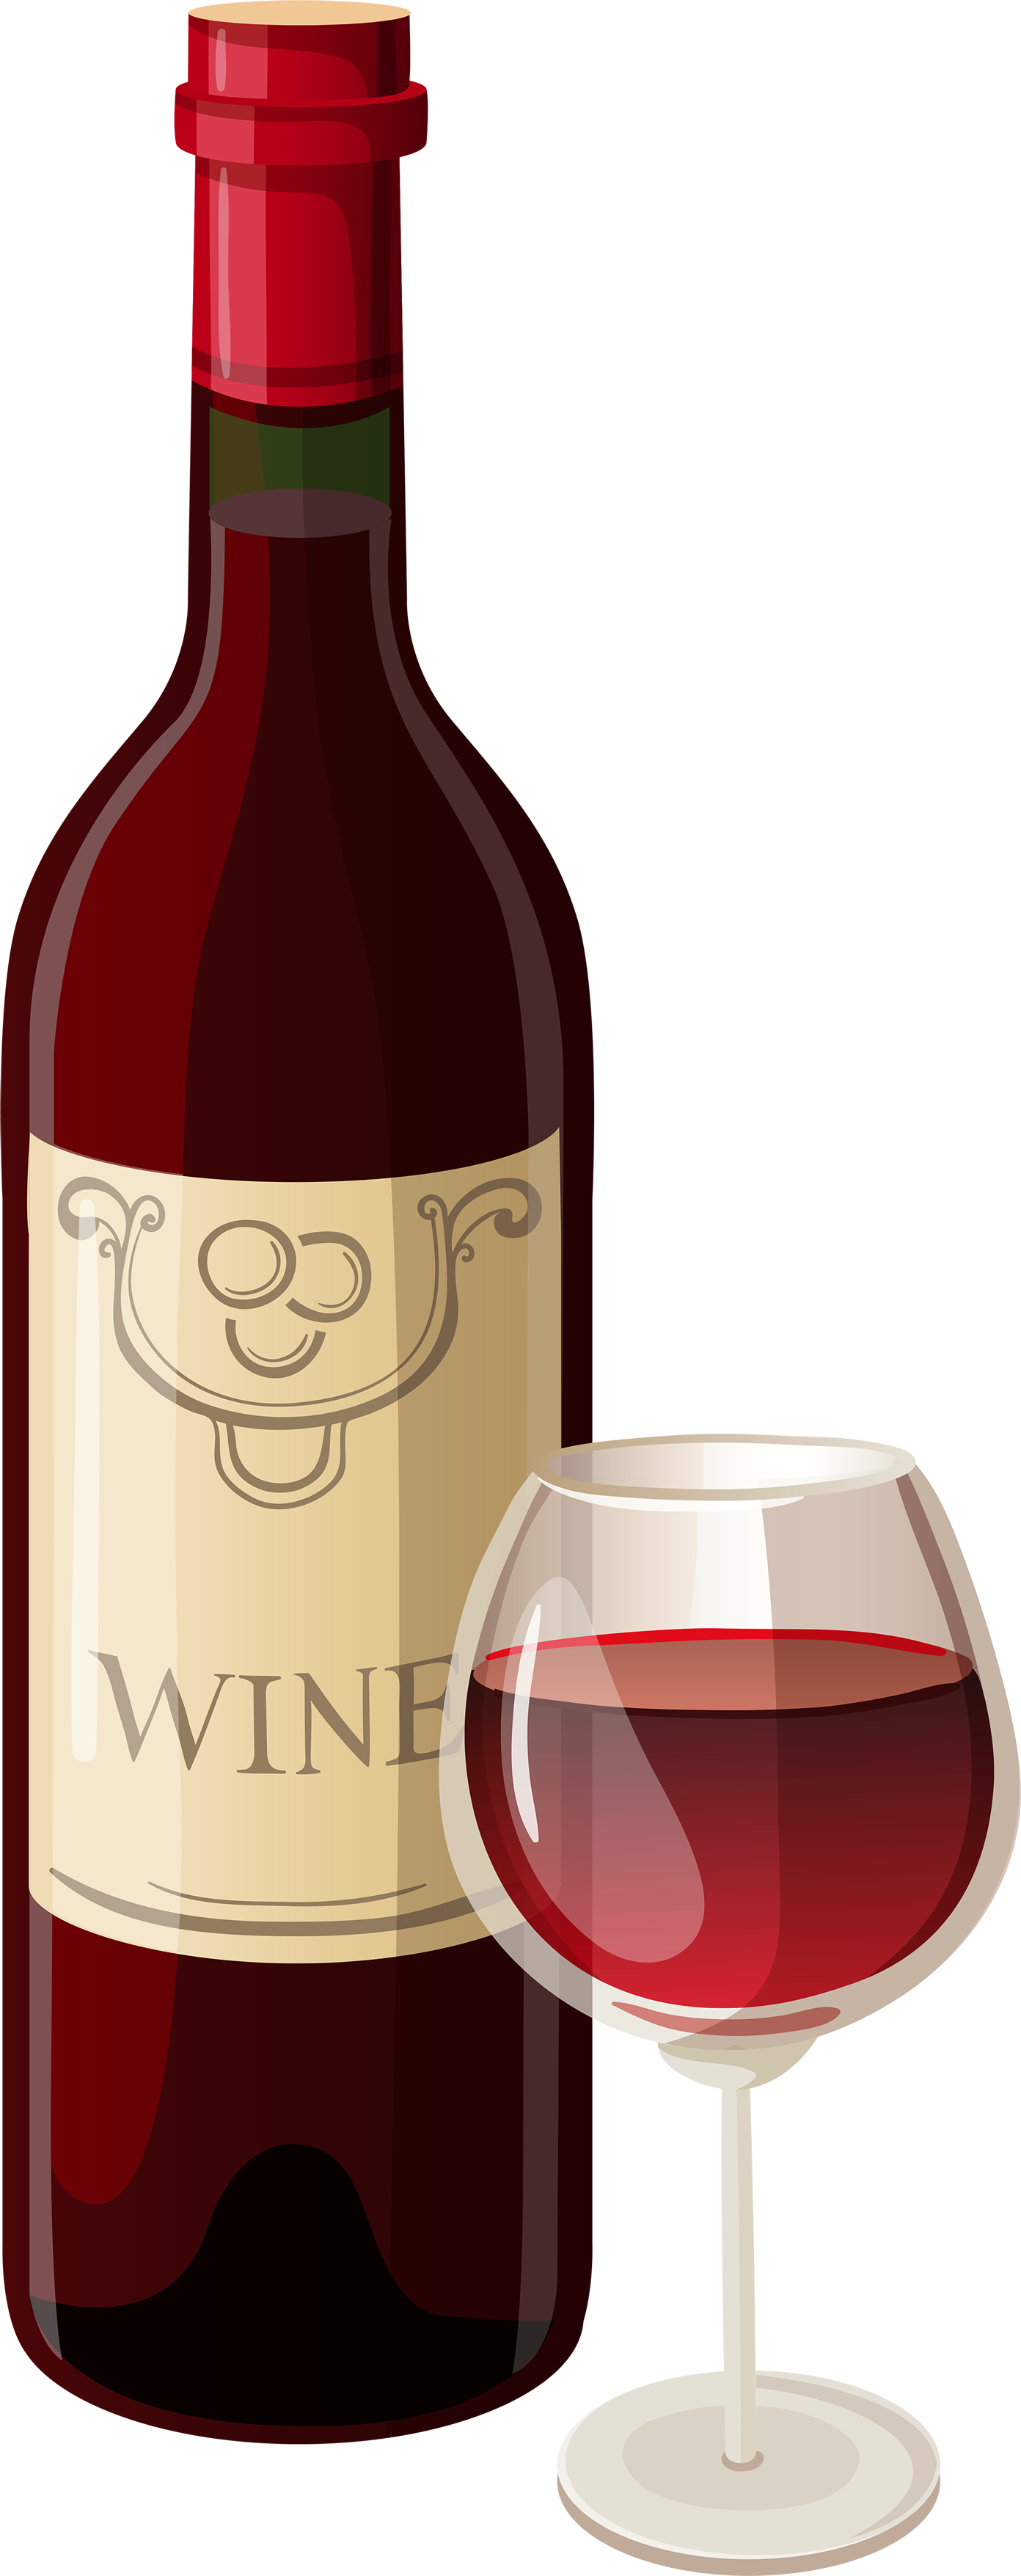 Image result for wine bottle and glass clip art.